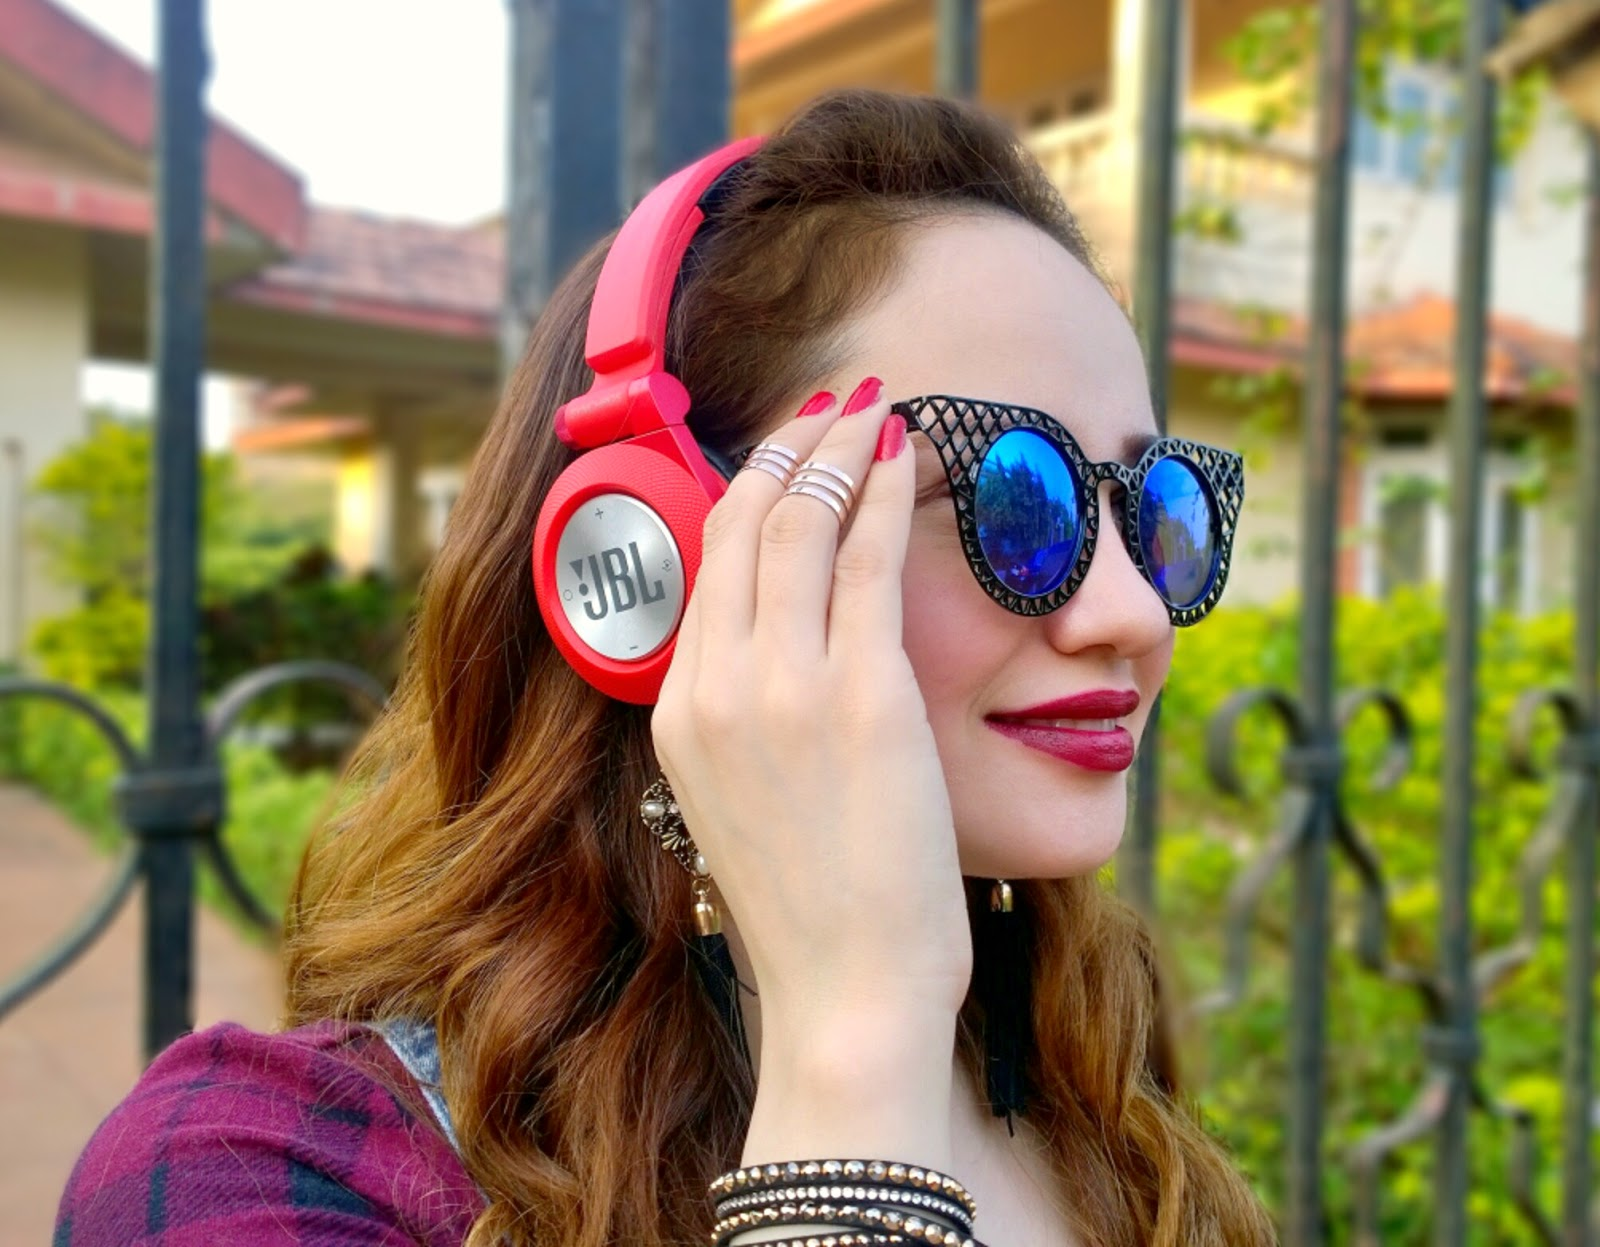 Candy Red JBL Wireless Headphones, Cat Eye Sunglasses, Midi-rings, MAC Diva Lipstick